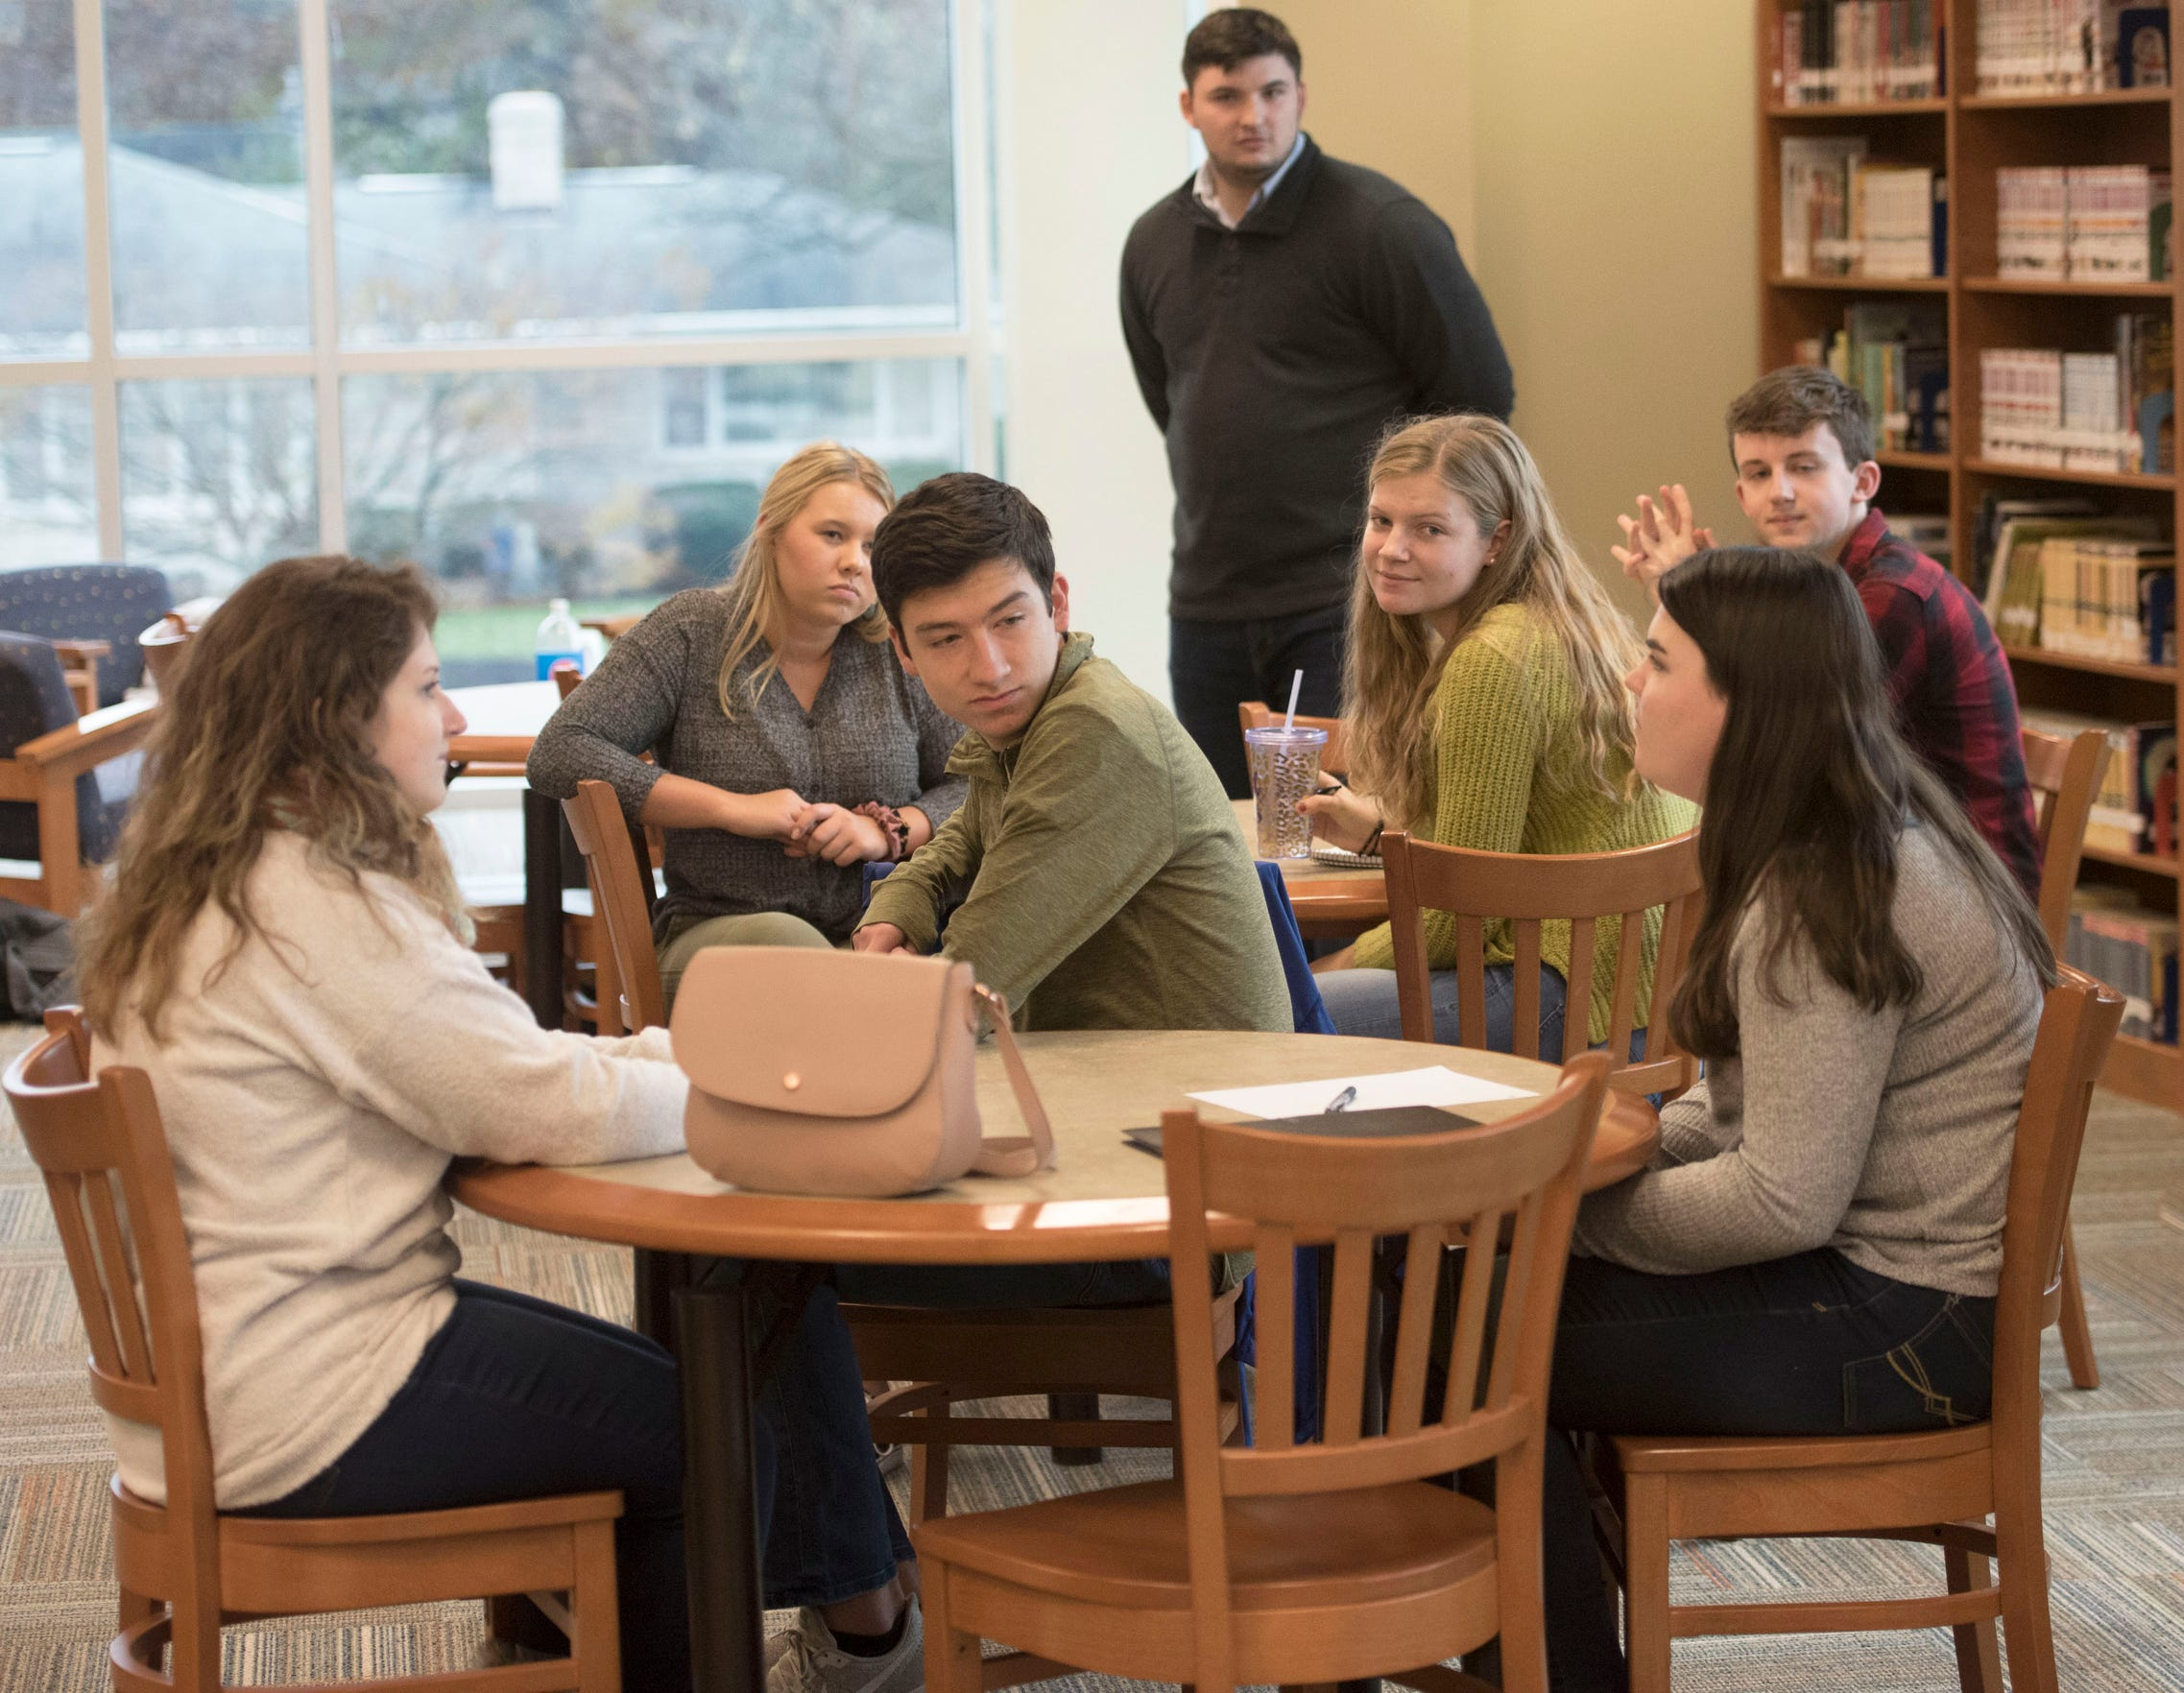 Kelton Chastulik, standing, is joined by other CASHS alumni and current students as they coordinate a book drive for Franklin County Homeless Shelter on Wednesday, November 21, 2018. Chastulik is currently a student at Princeton University.